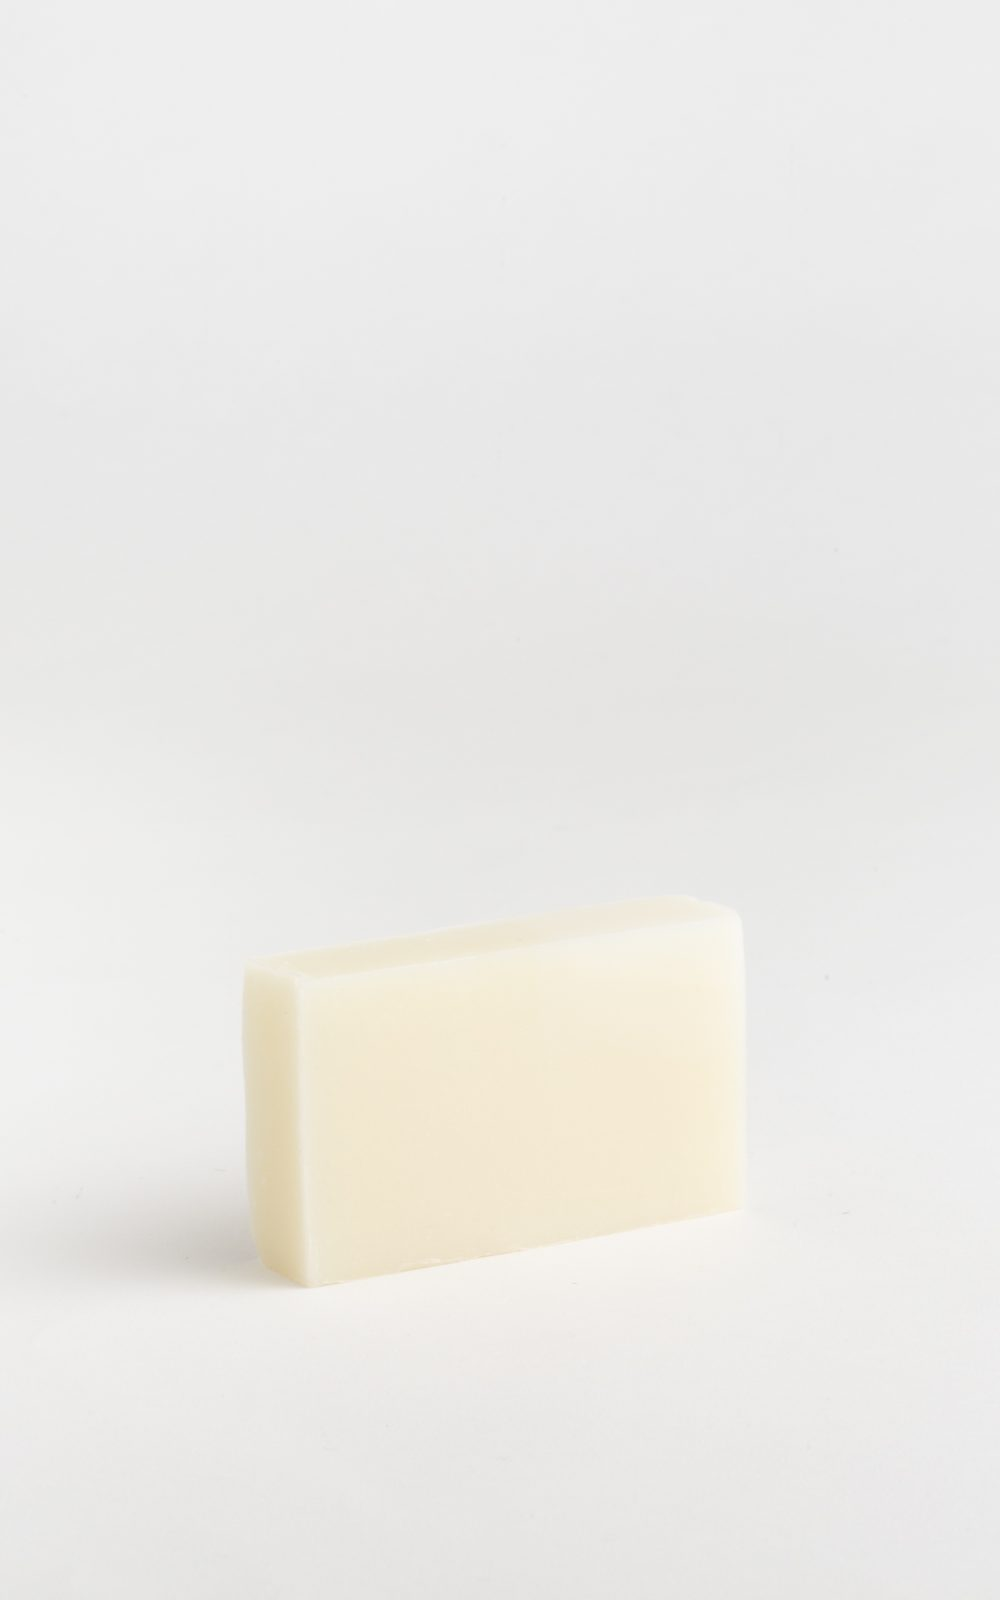 vegan organic cleaning soap bar